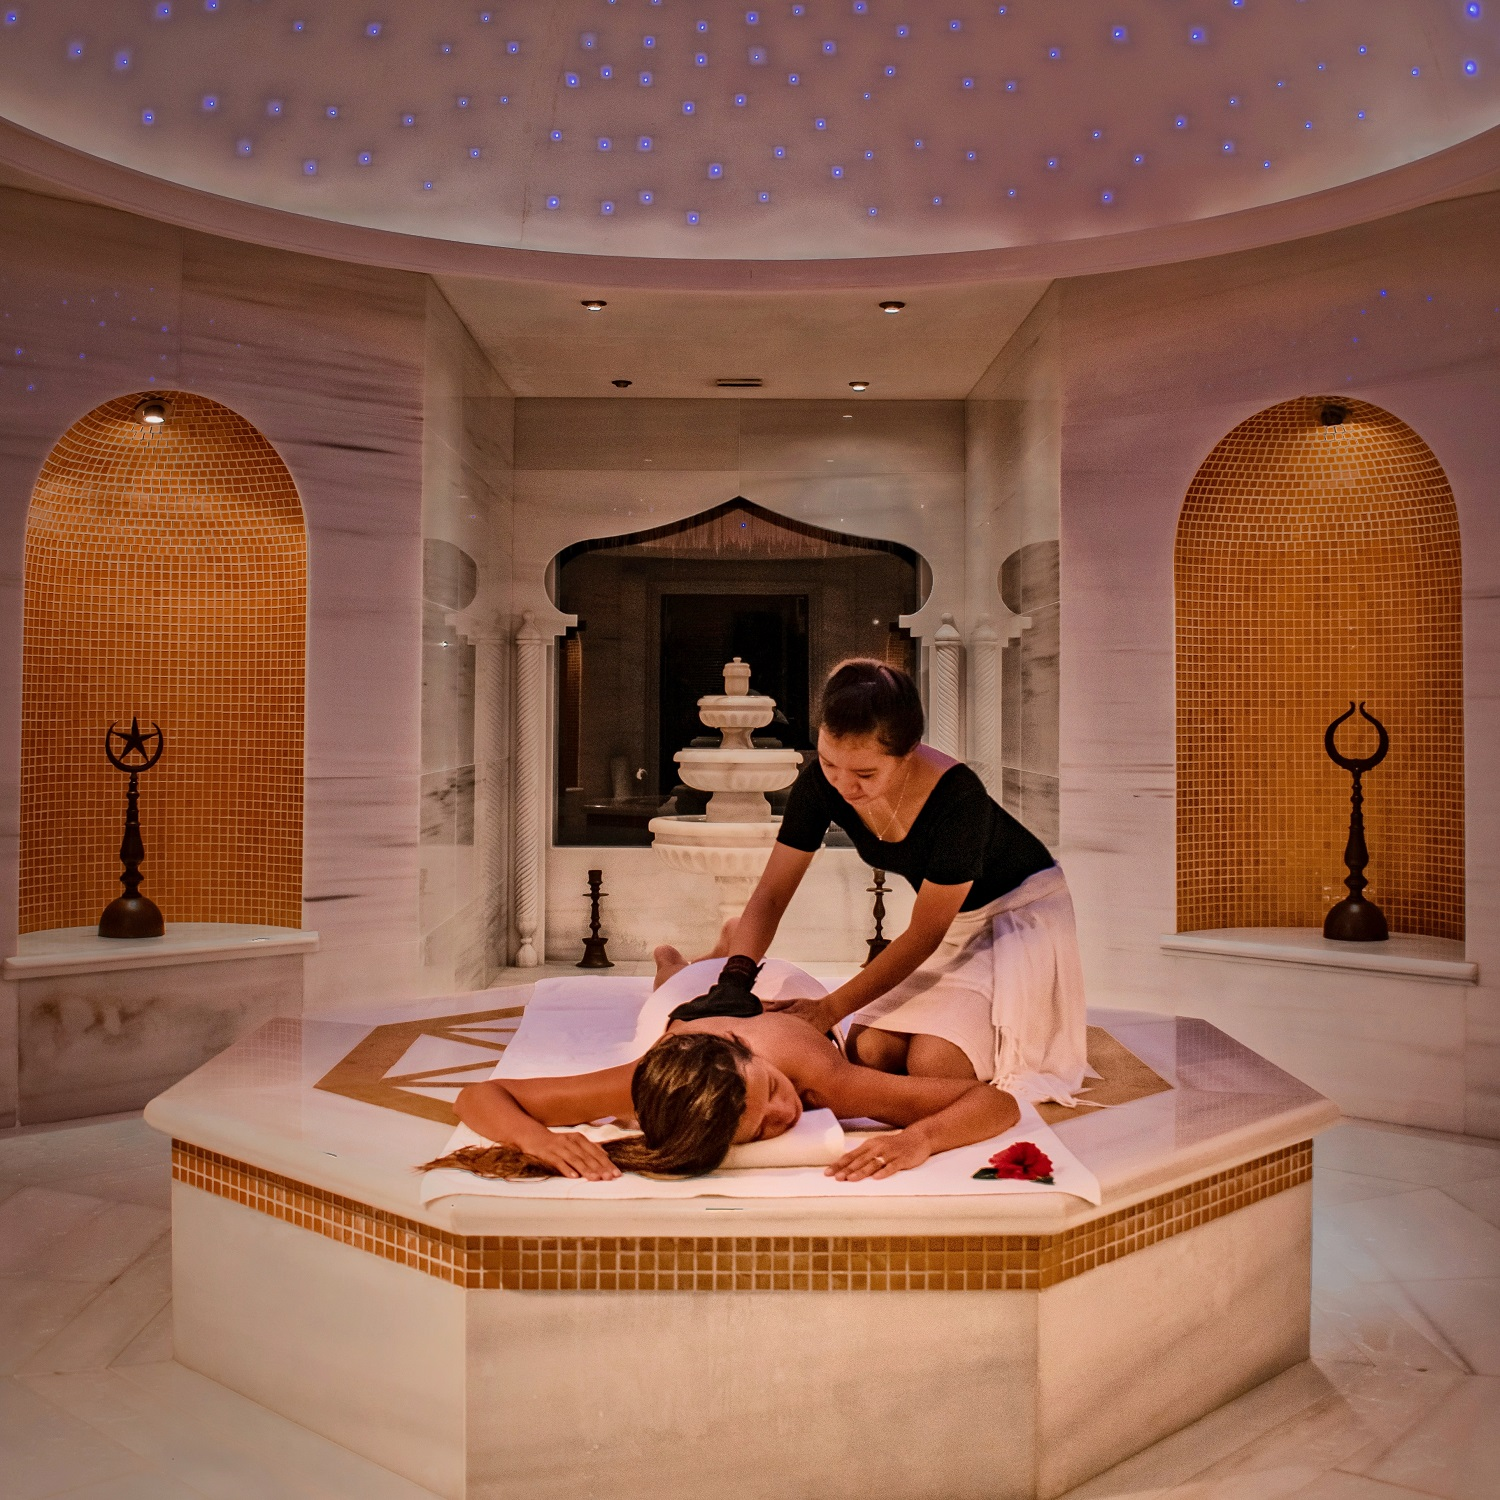 Turkish Hammam - Inspired by one of the oldest cleansing traditions in the world, the Hammam Turkish Bath is a purifying and refreshing ceremony that promotes well-being for body and mind.Discover our signature treatment, the